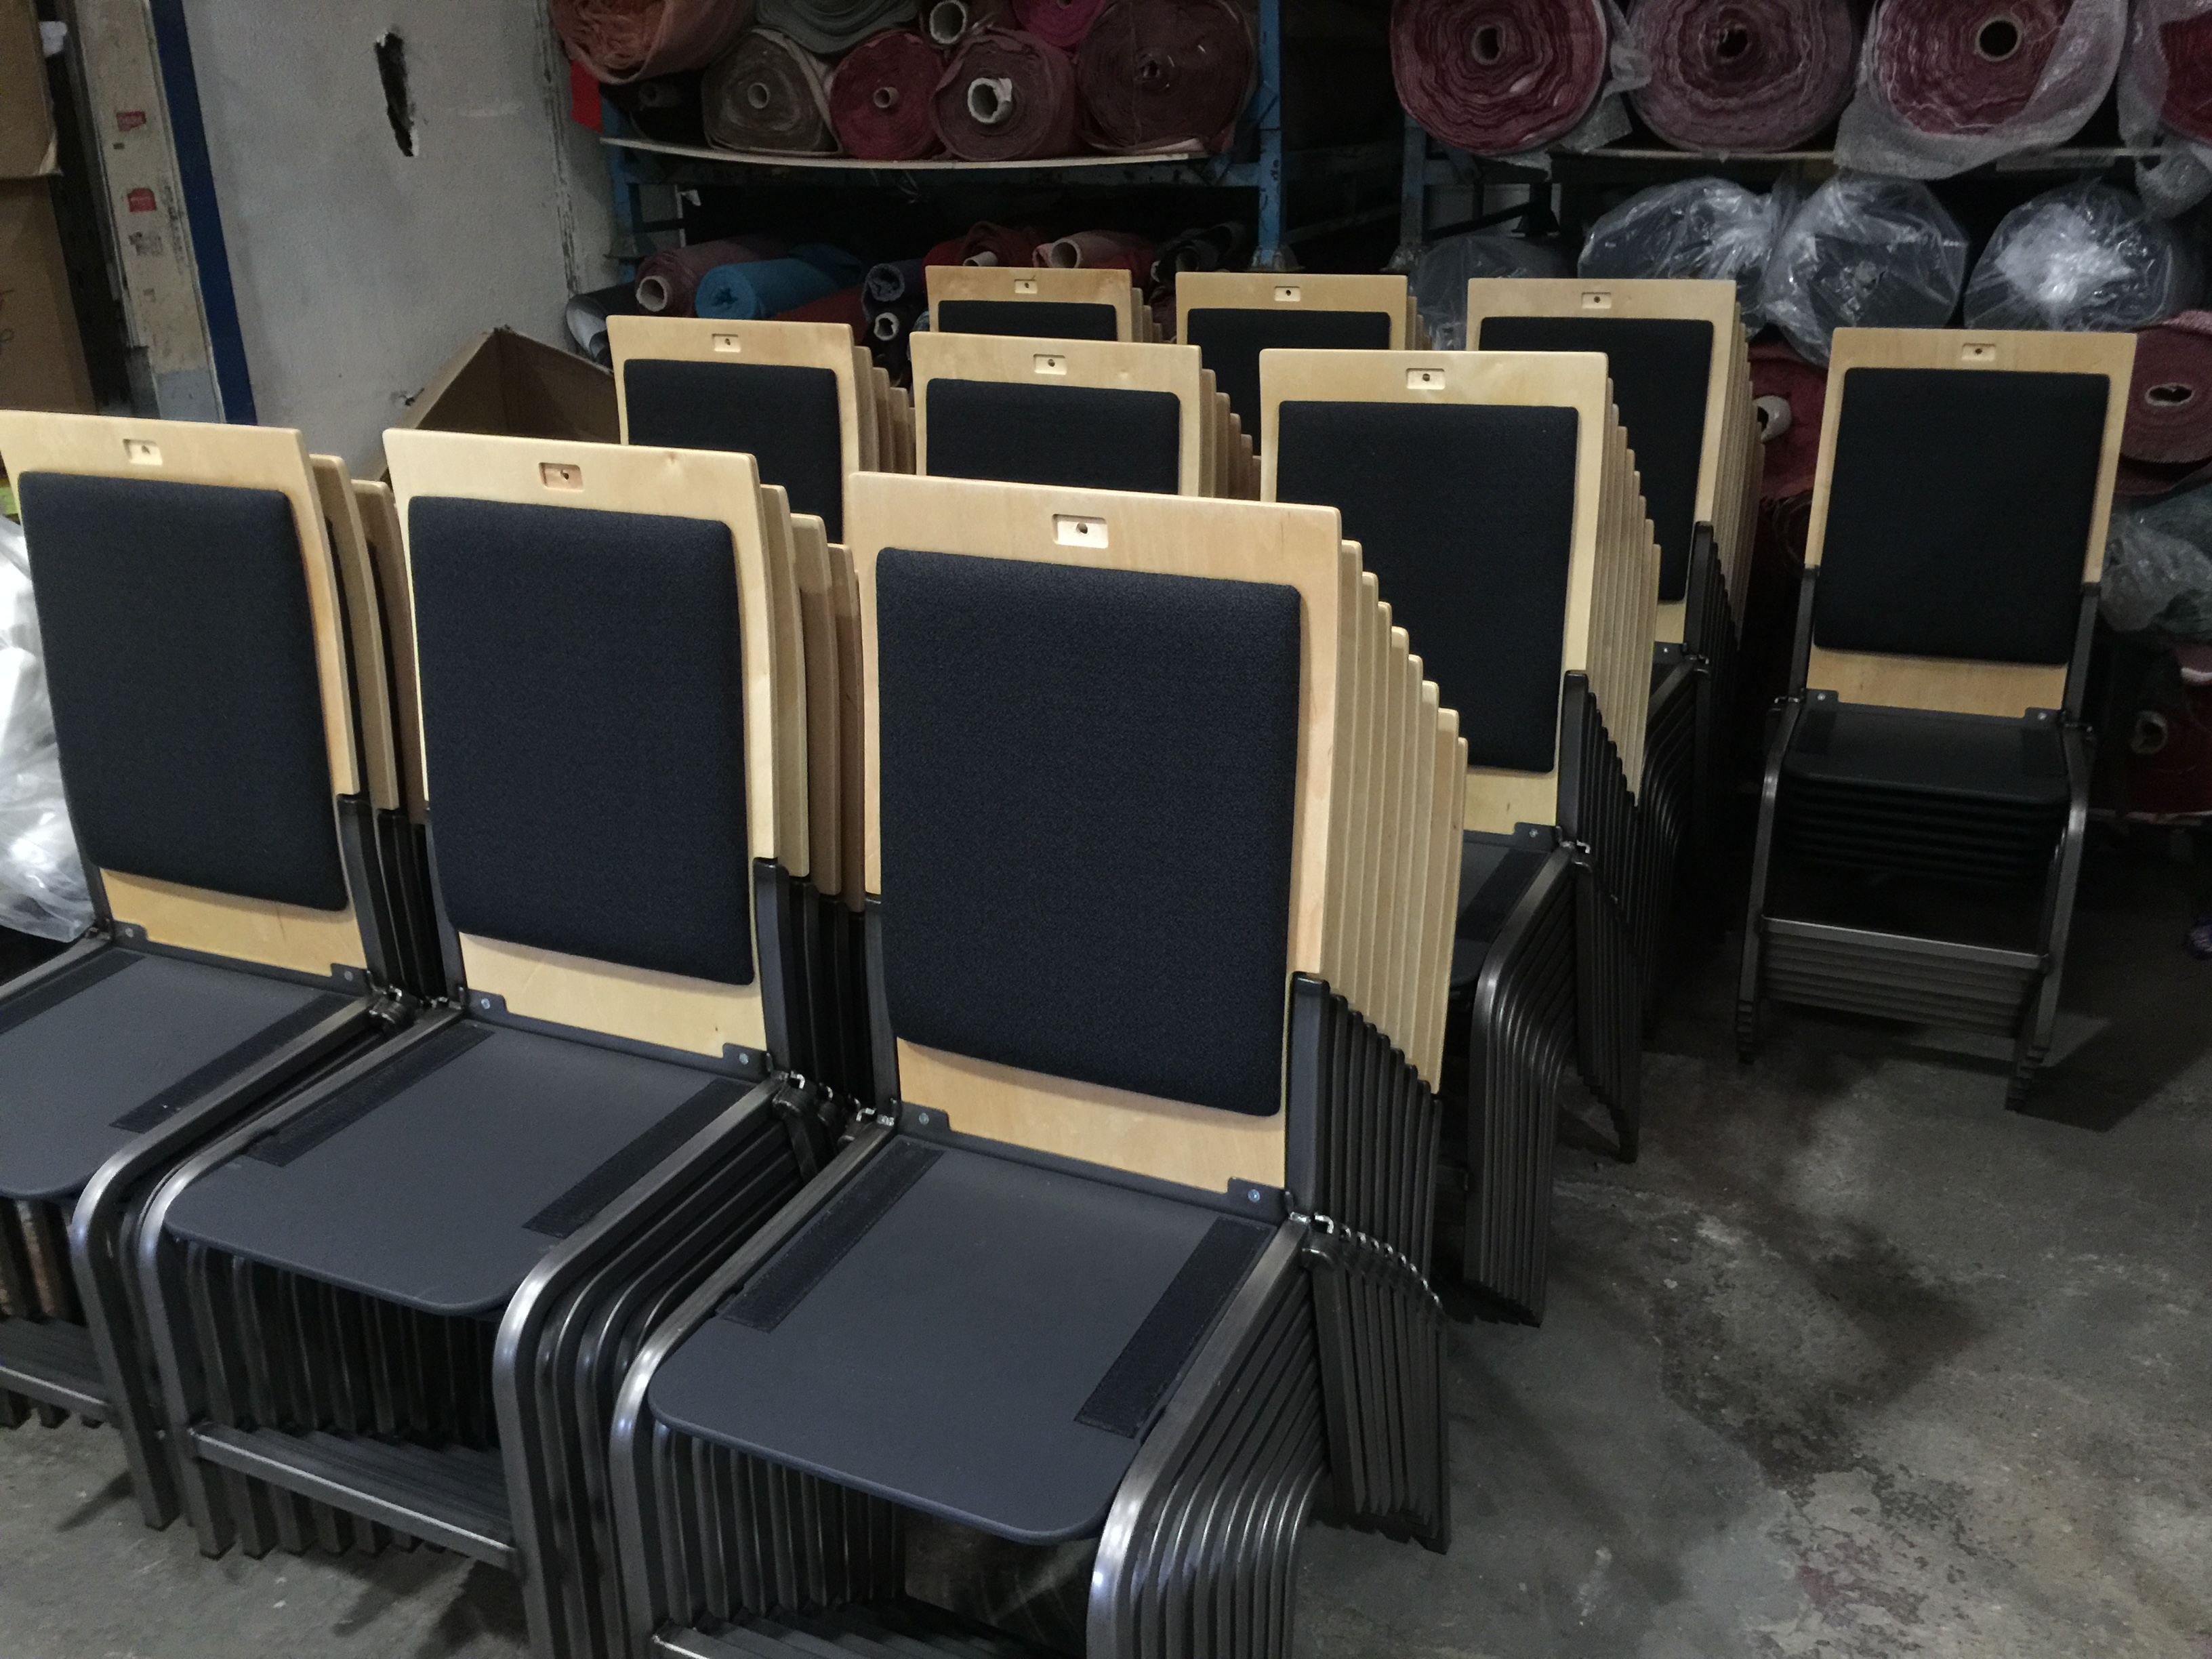 Portobello Probax Stacking Chair by Kirwin & Simpson Seating for St Ann's Warehouse NYC